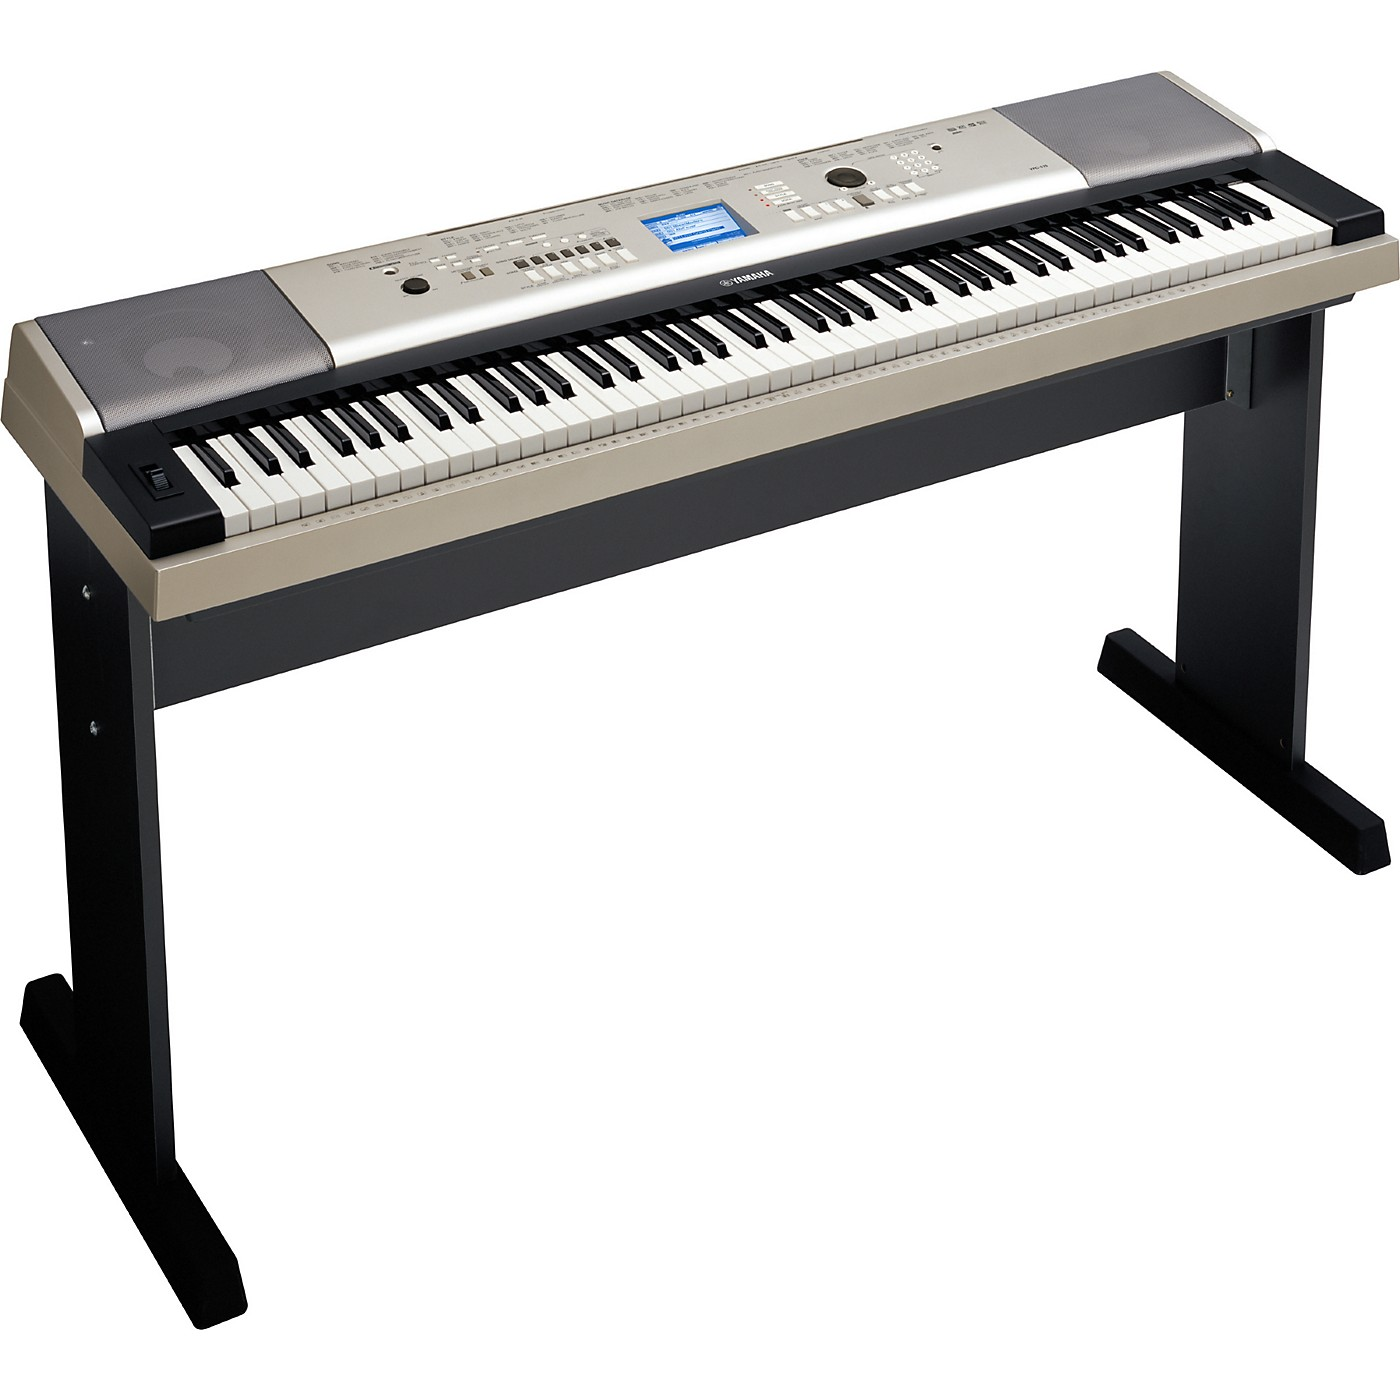 Yamaha YPG-535 88-Key Portable Grand Piano Keyboard thumbnail